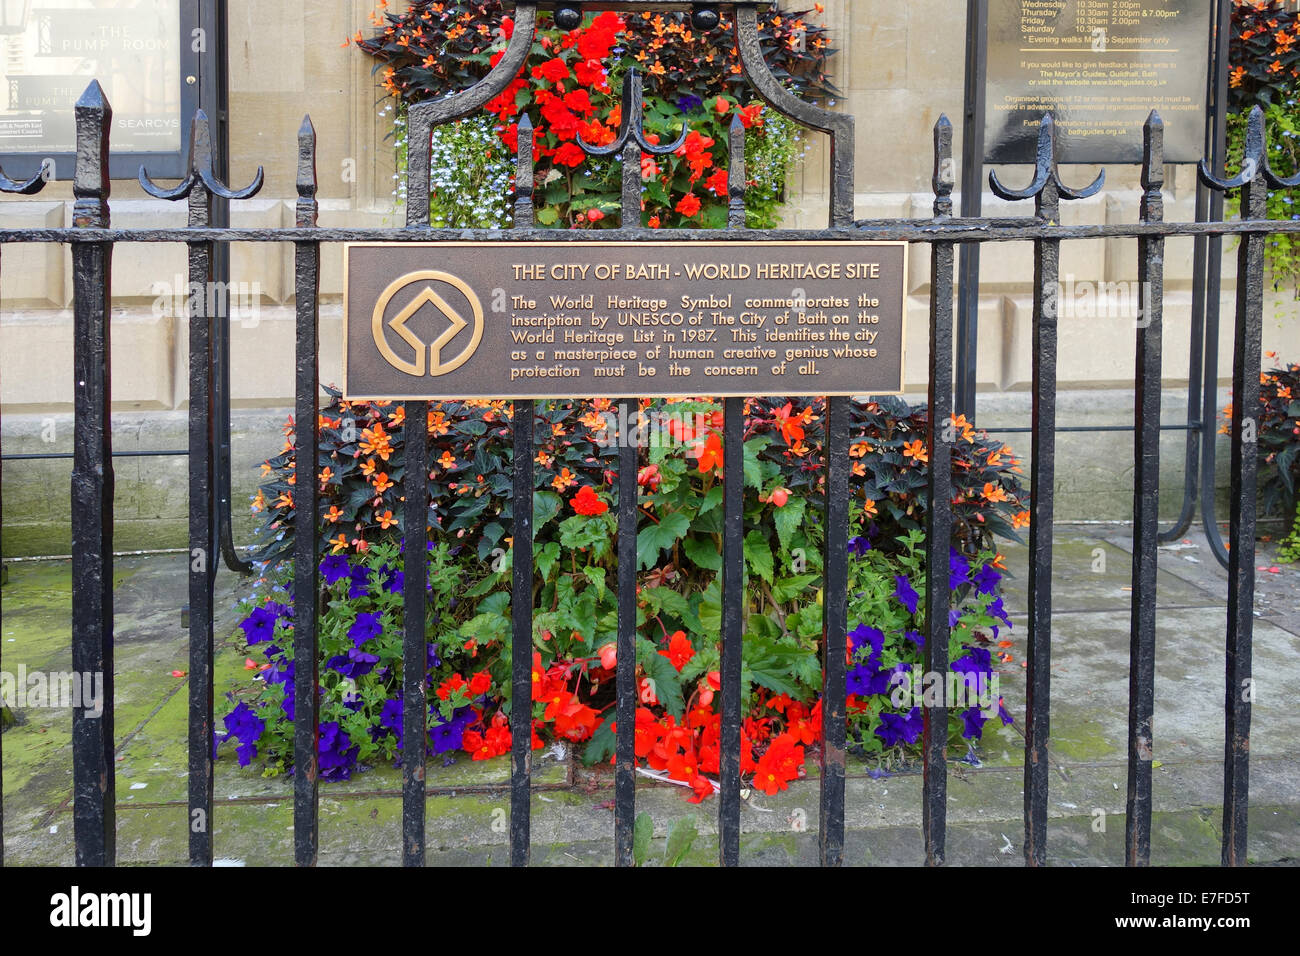 City of Bath World Heritage Site plaque, Bath, Somerset - Stock Image